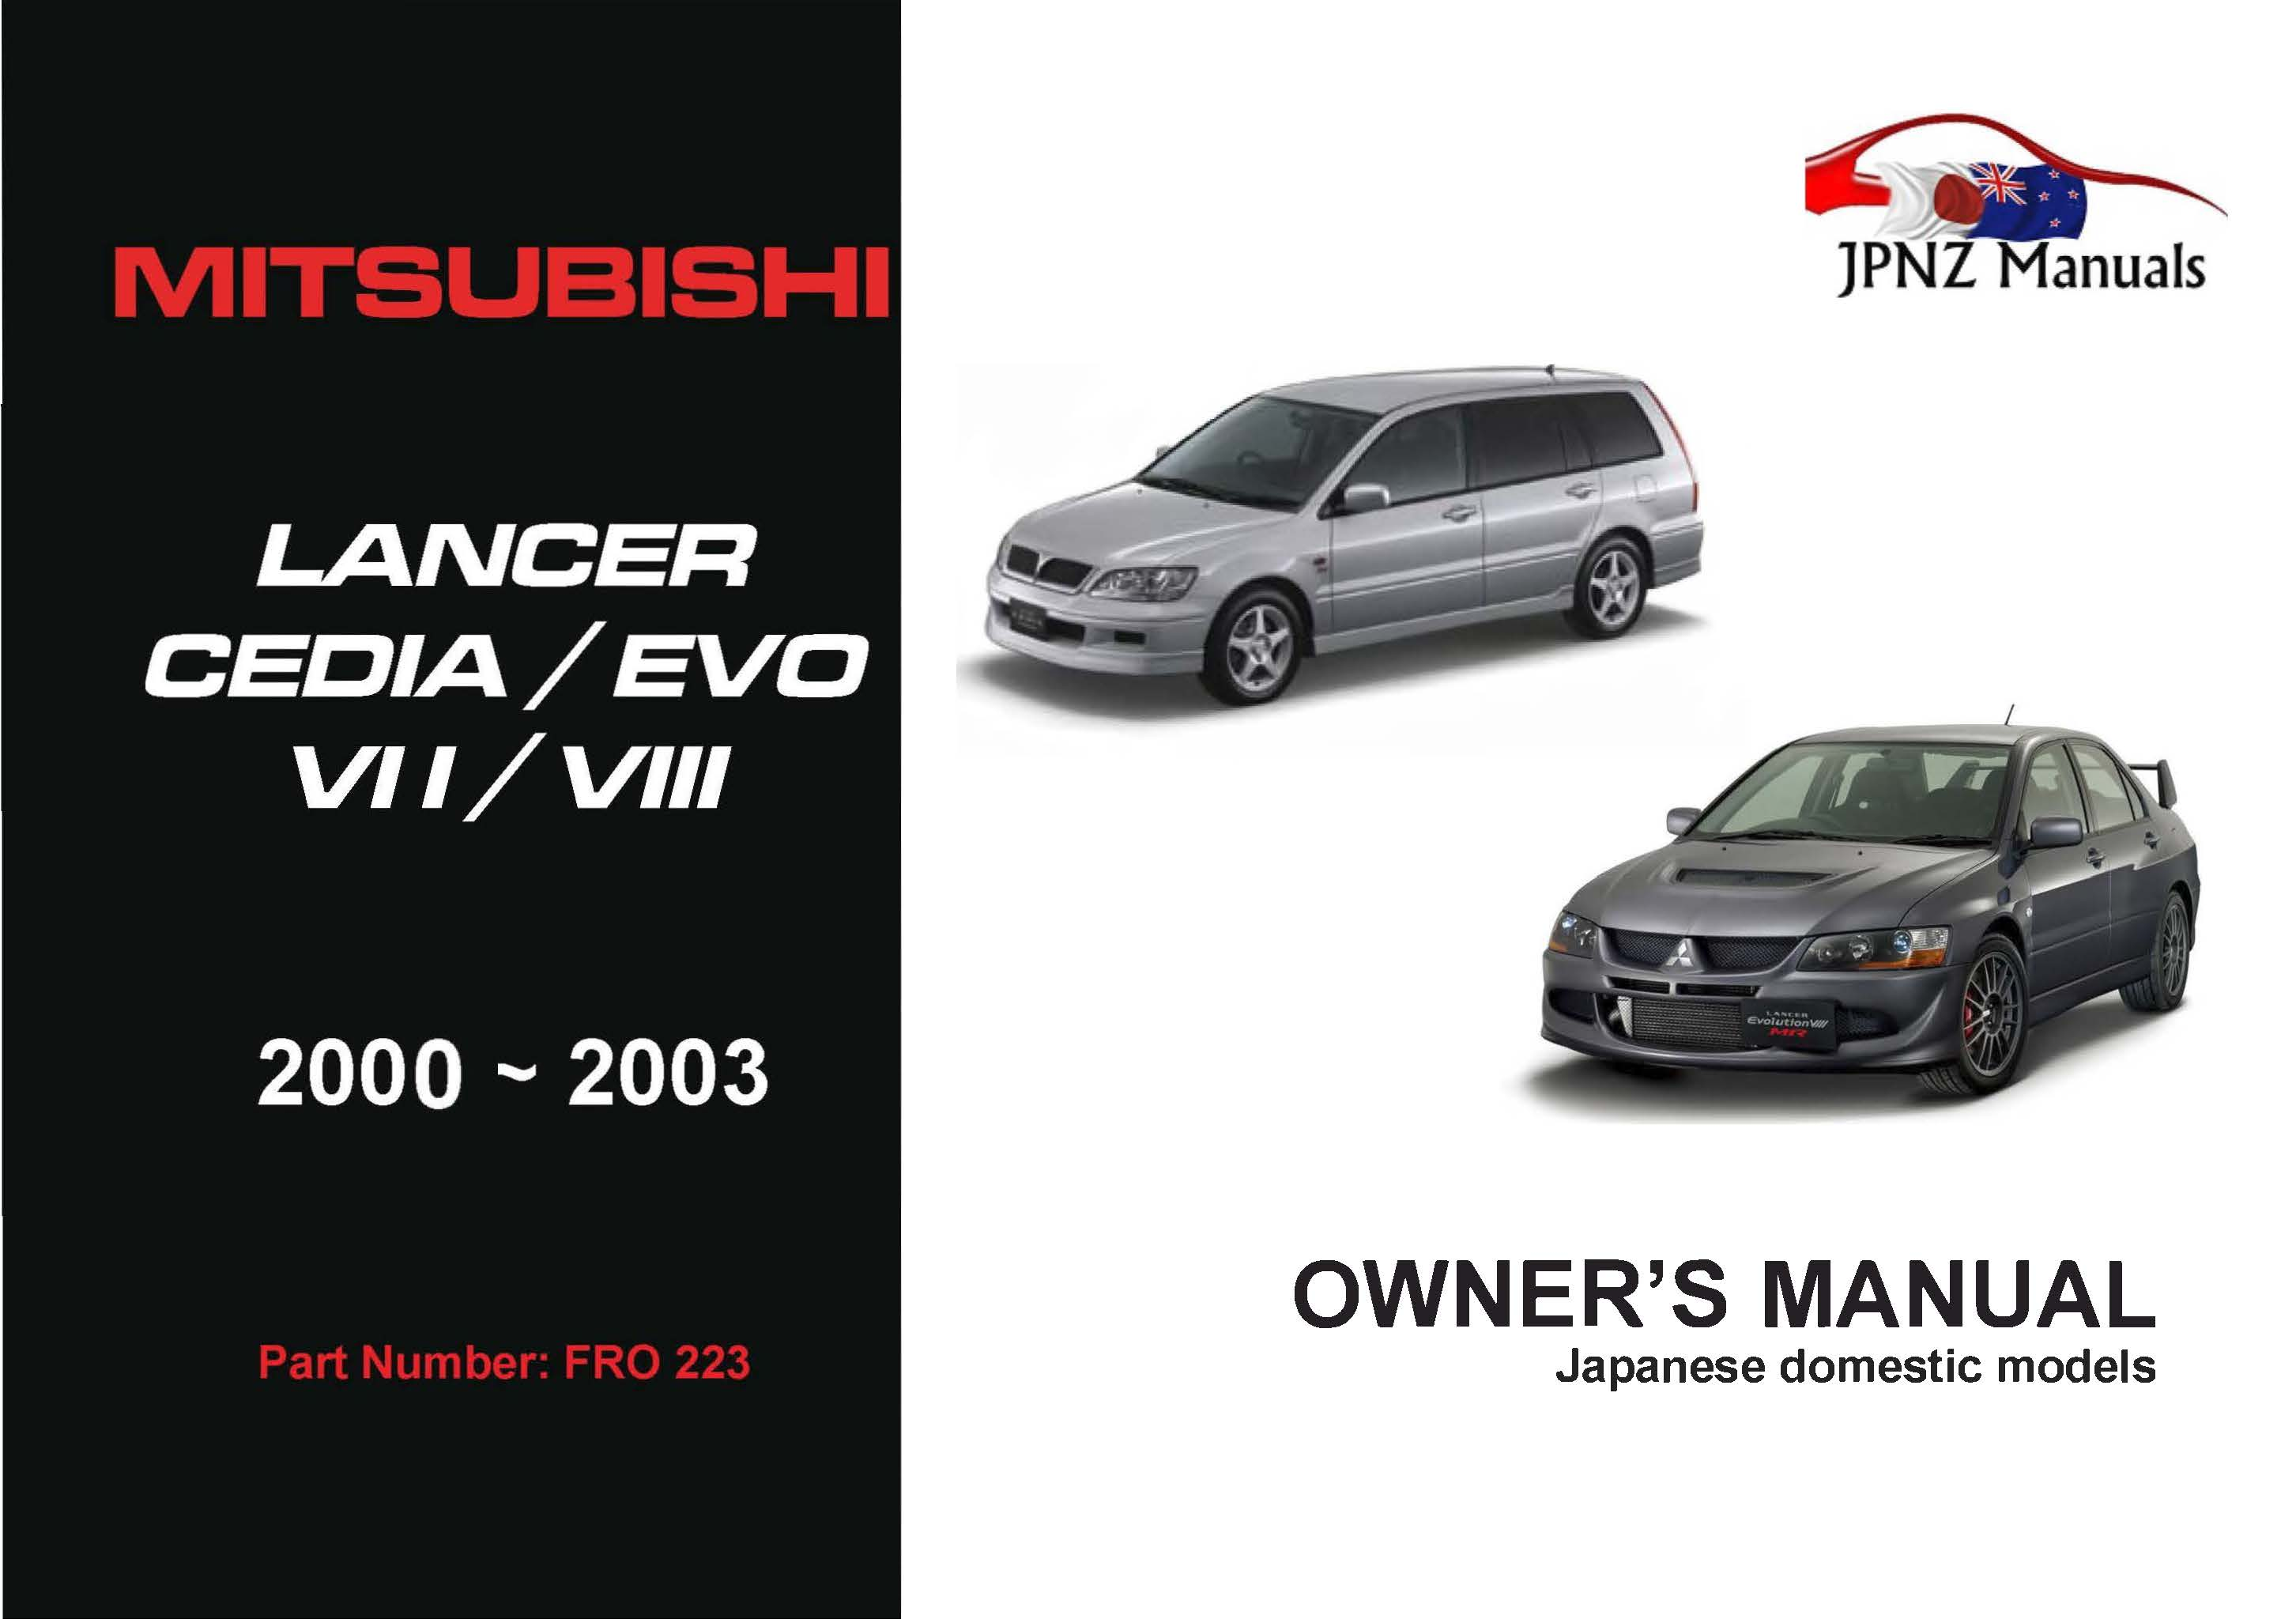 Mitsubishi – Lancer Cedia / Evo VII / VIII owners manual | 2000 – 2003